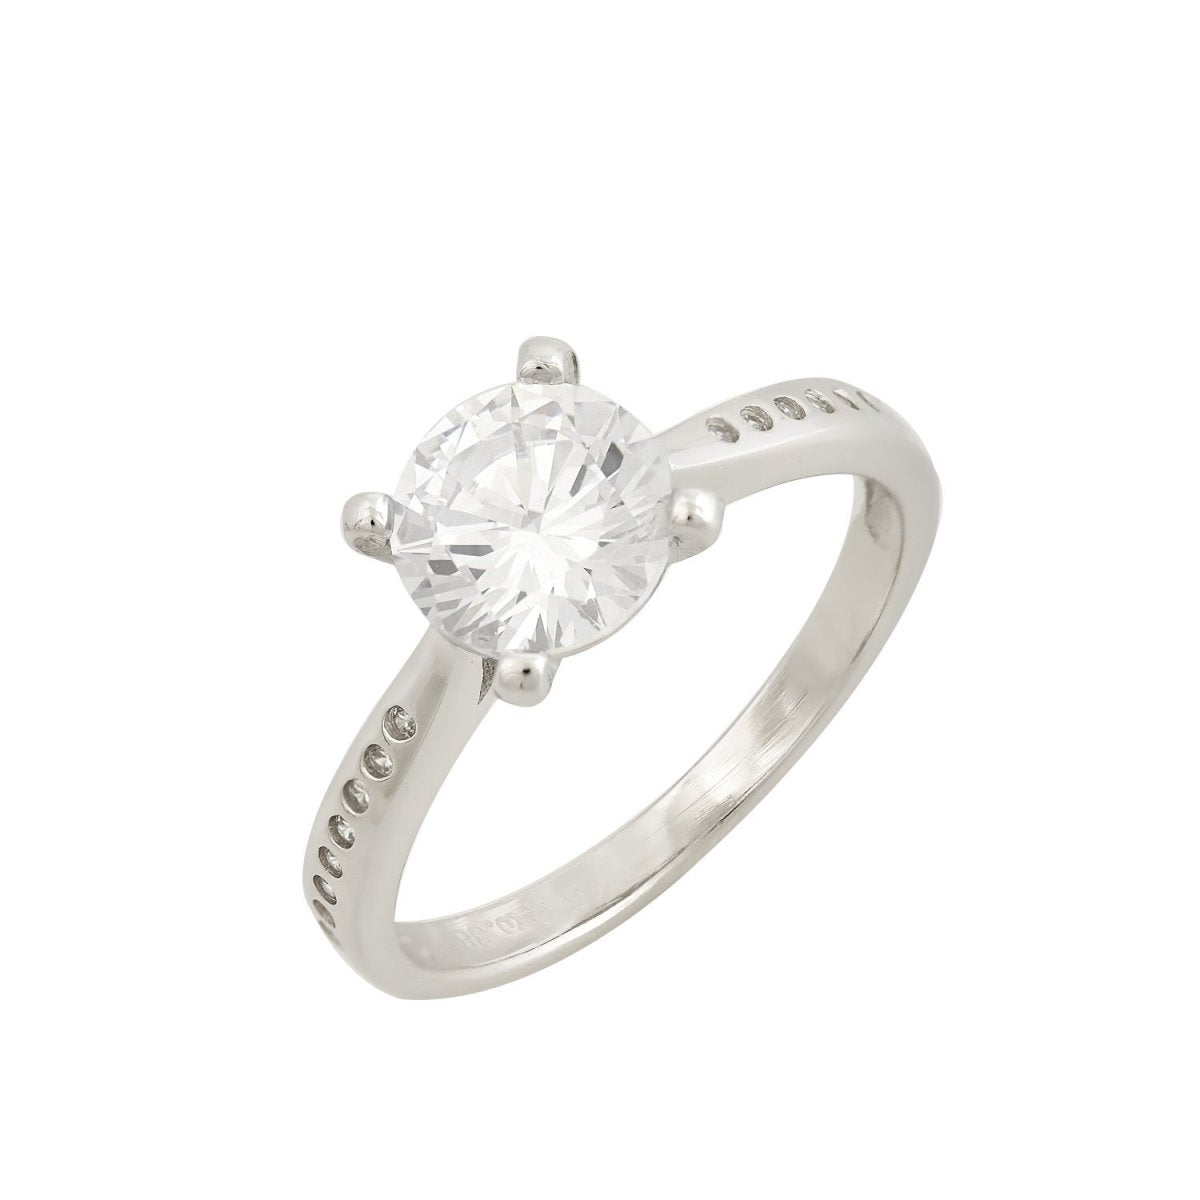 Single Stone Ring RS3546 Platinum Plating - Goldy Jewelry Store